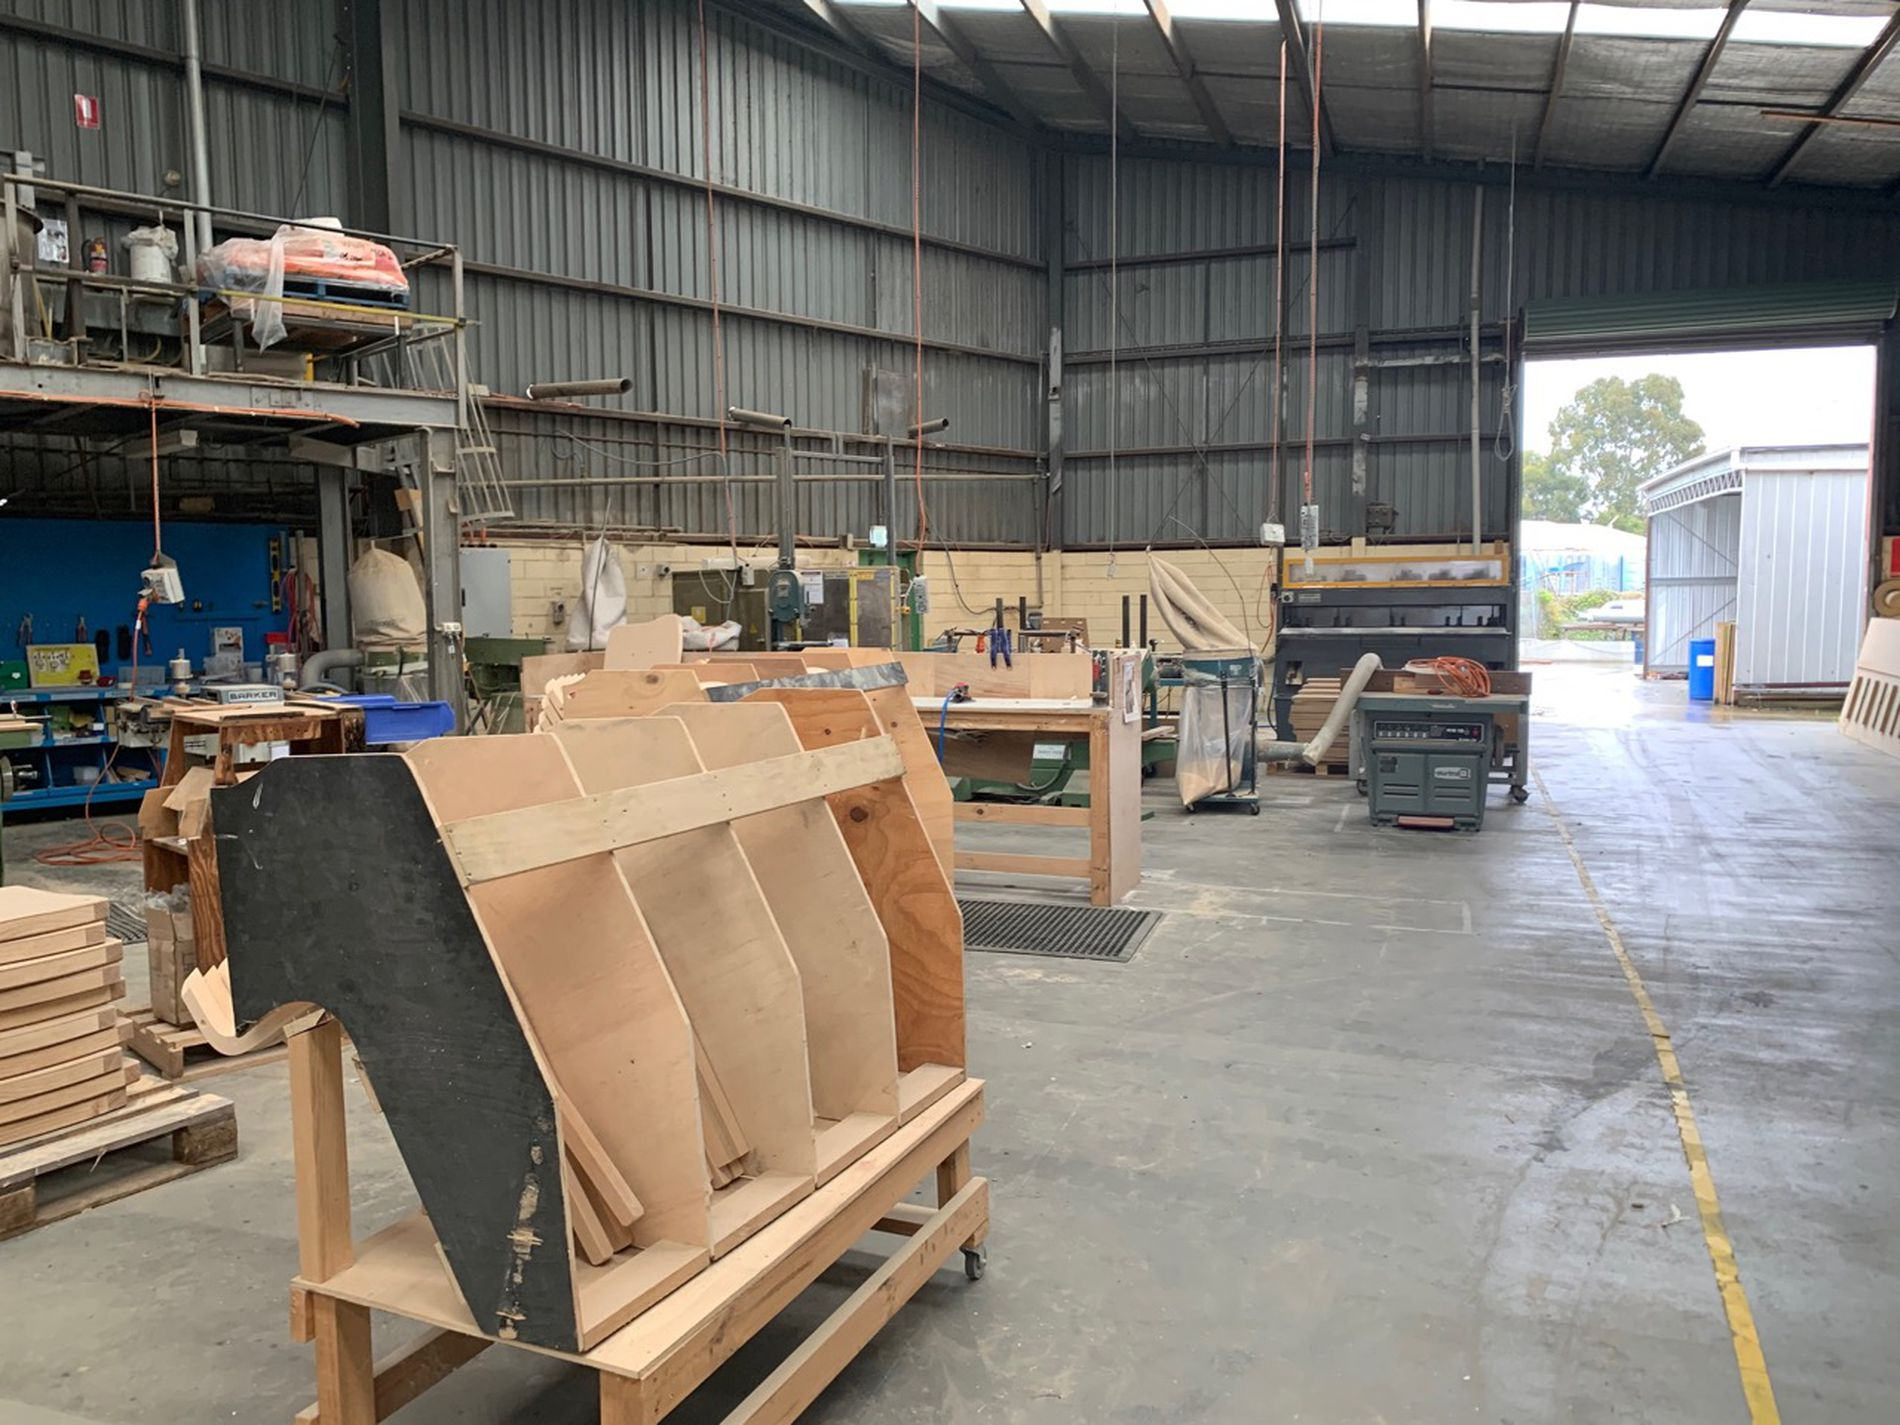 Furniture Manufacturing and Wholesale Business for Sale